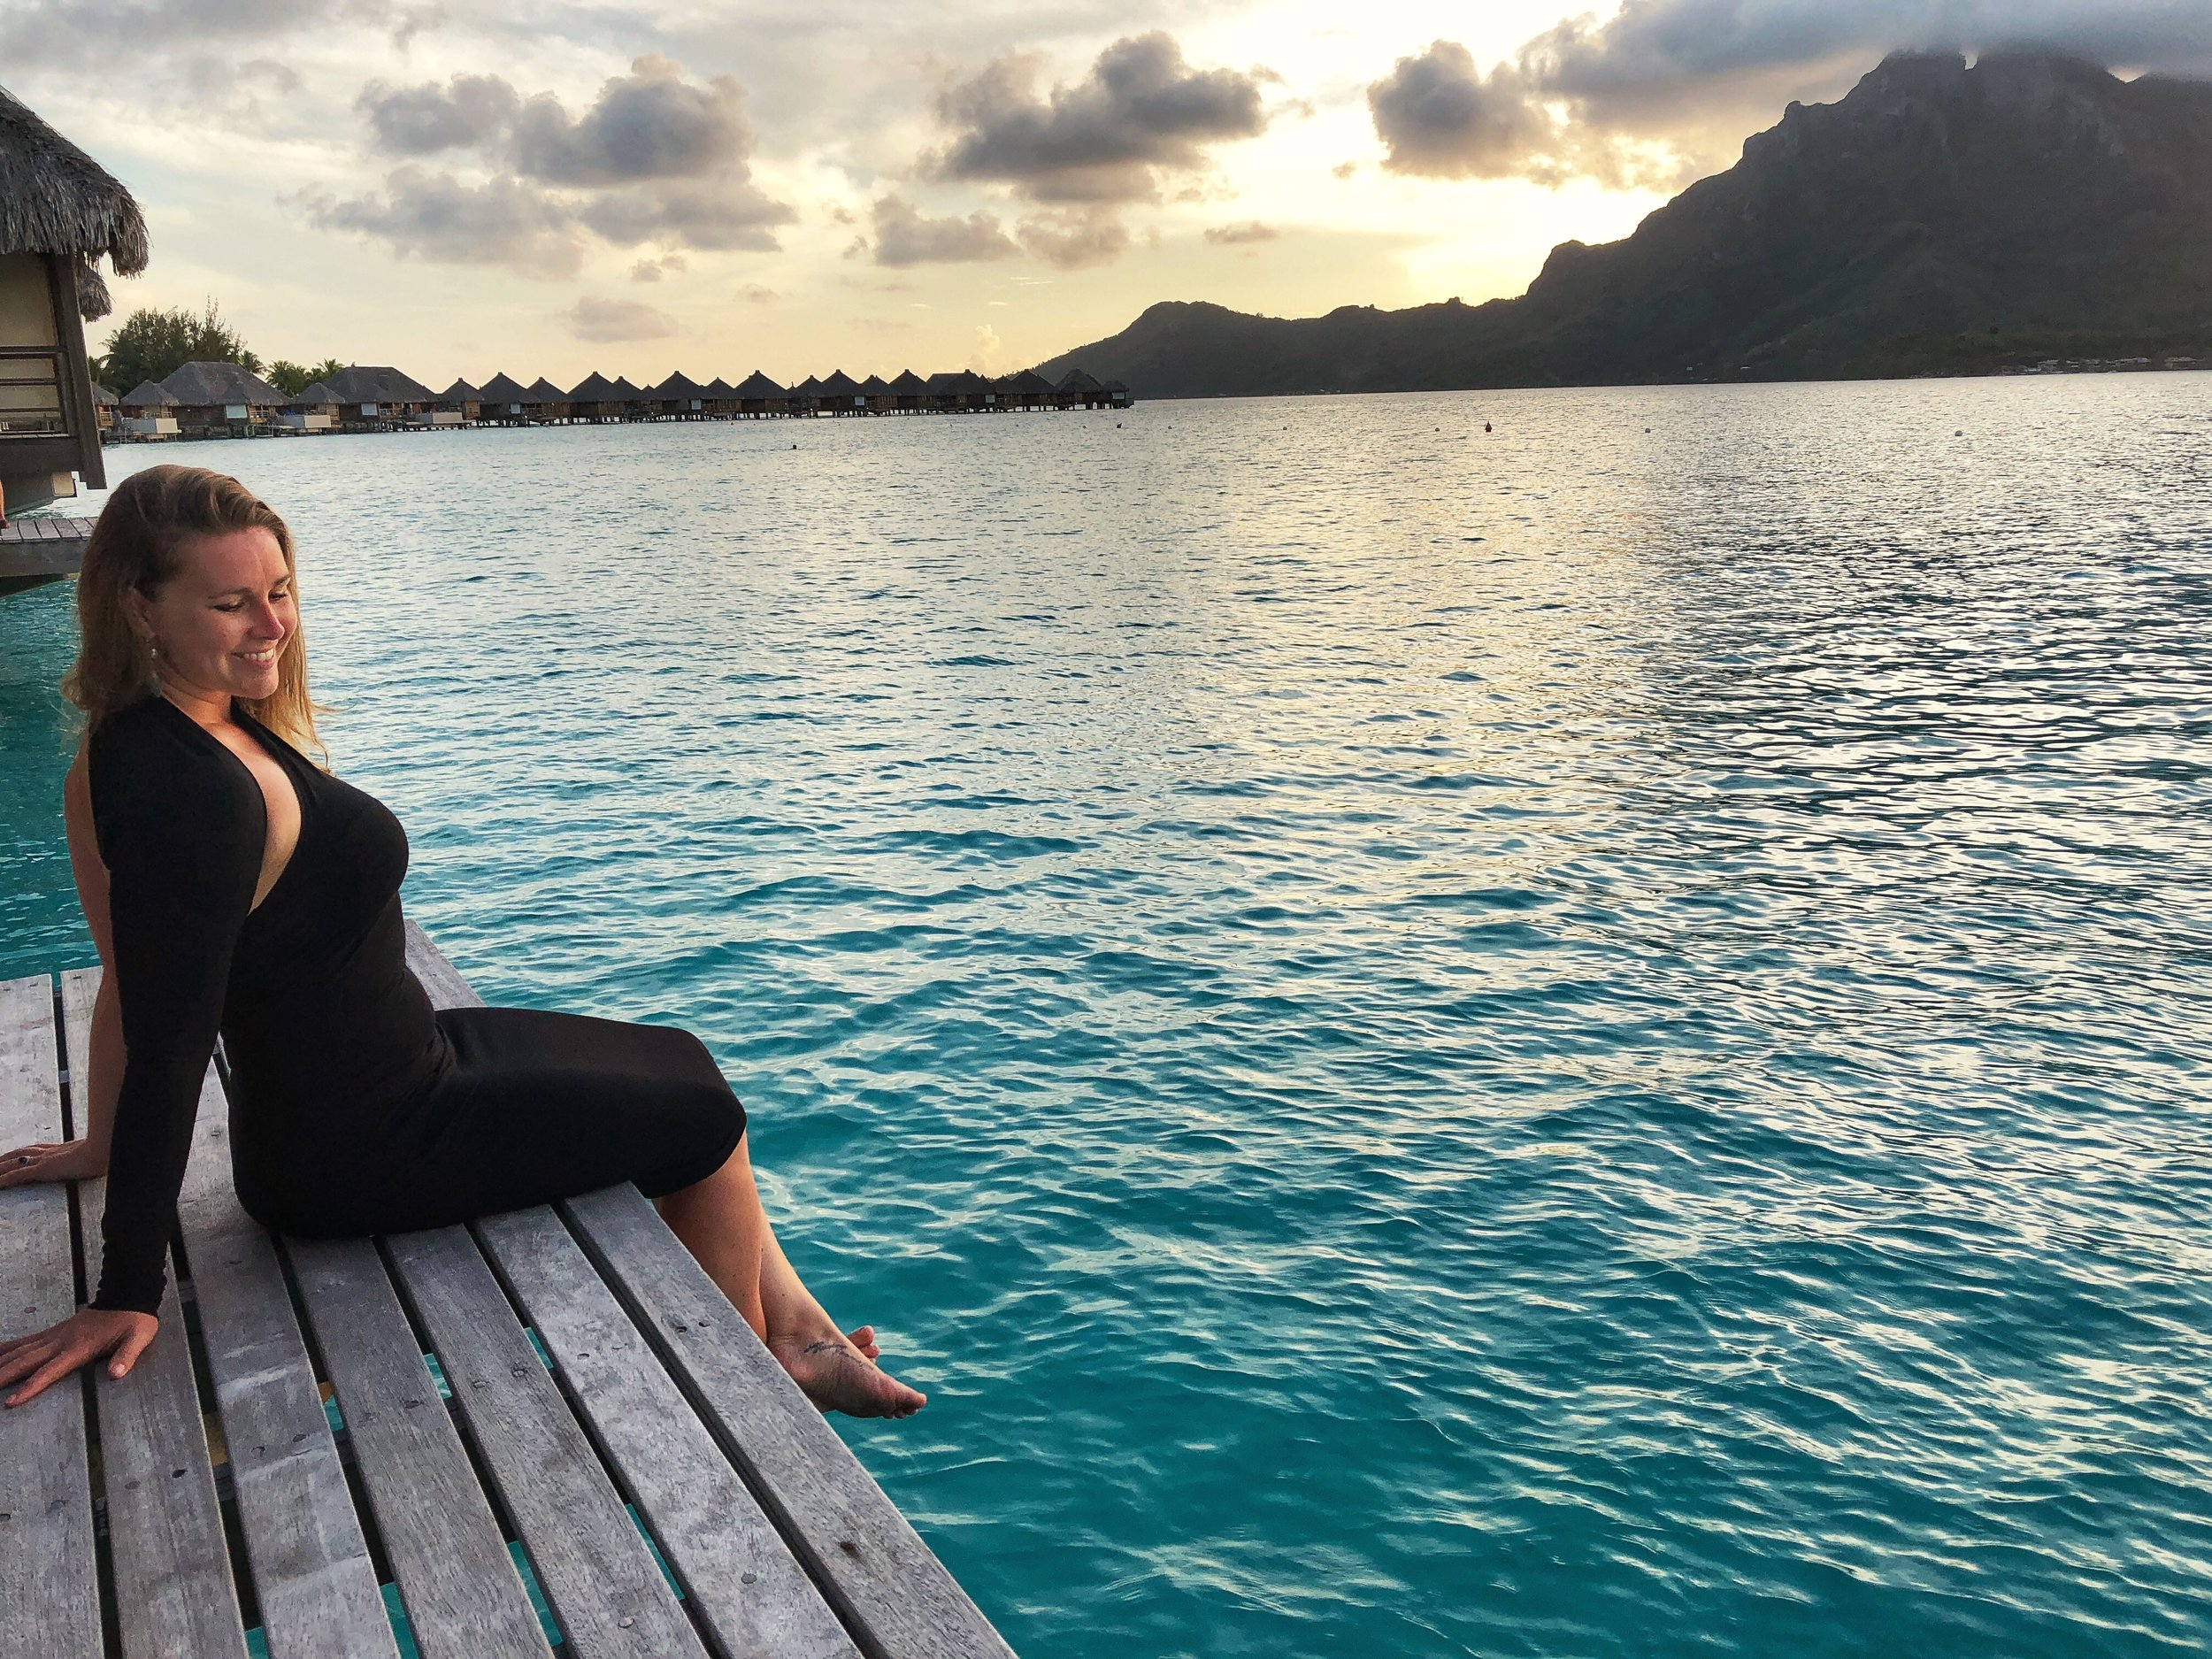 Pure relaxation in Bora Bora. No agenda, no exploring - just me and this sunset.